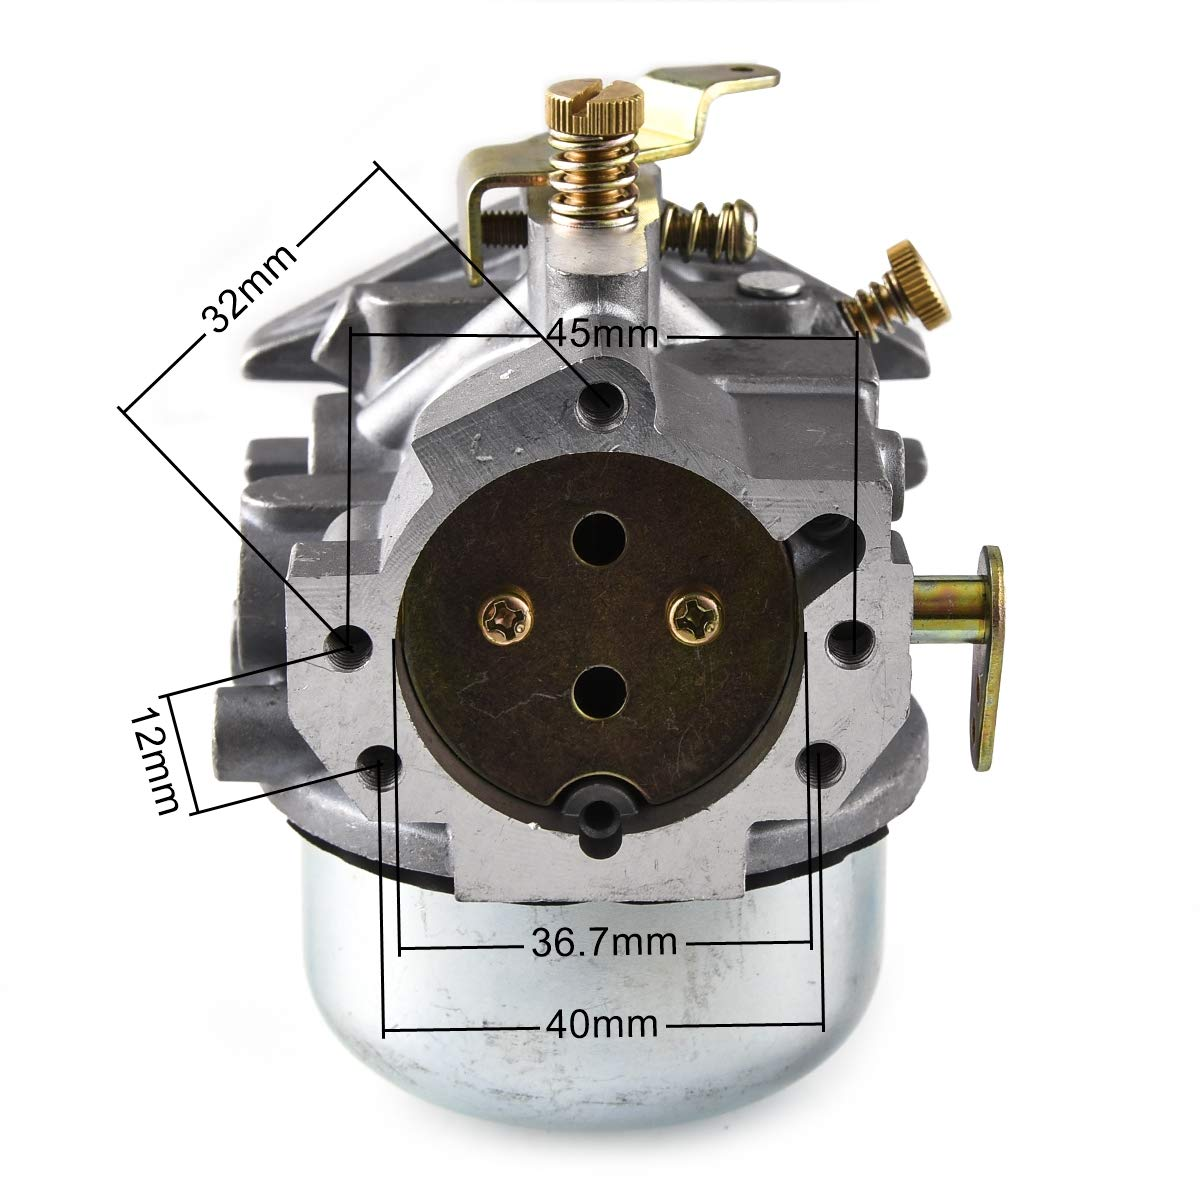 52-053-28 RUHUO Carburetor Carb for Kohler Magnum KT17 KT18 KT19 M18 M20 MV18 MV20 52-053-09 52-053-18